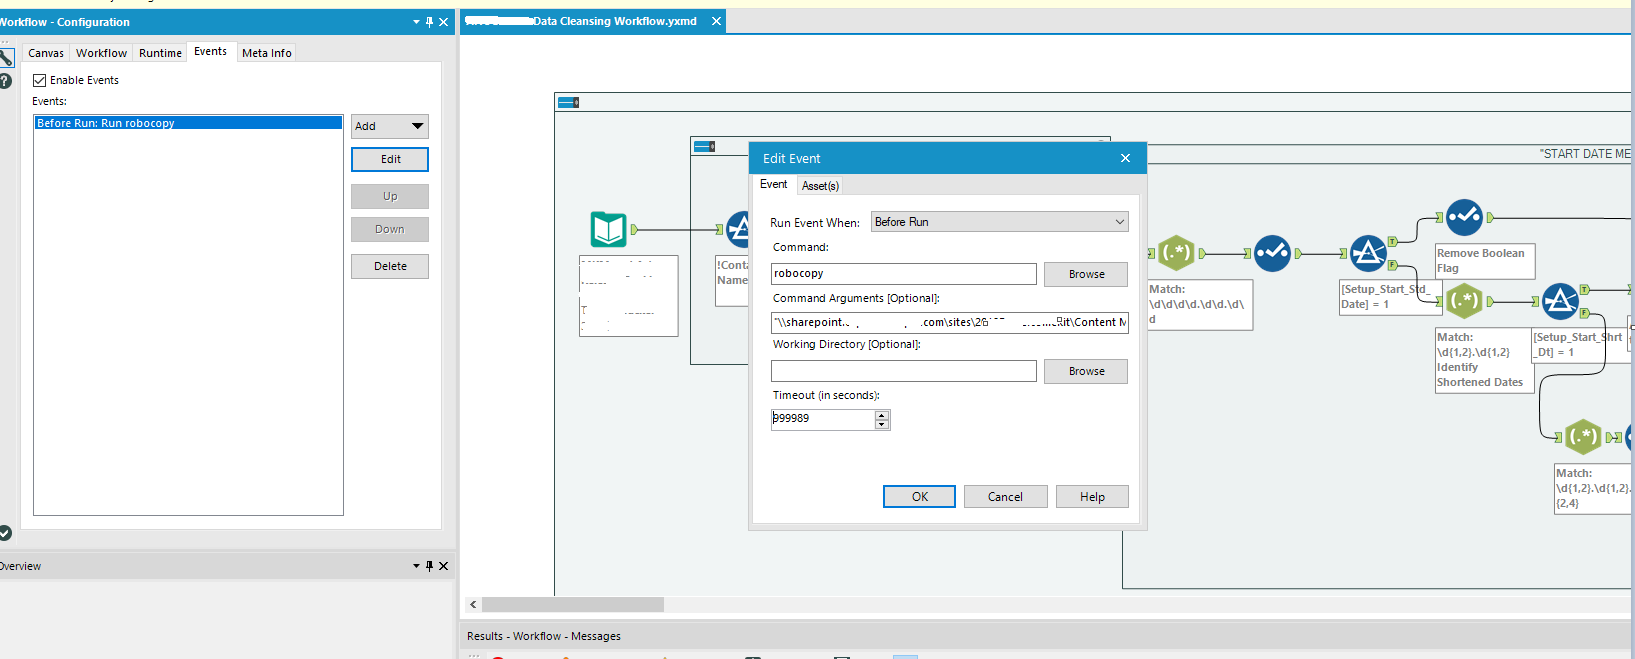 Solved: Scheduler & Sharepoint - Alteryx Community